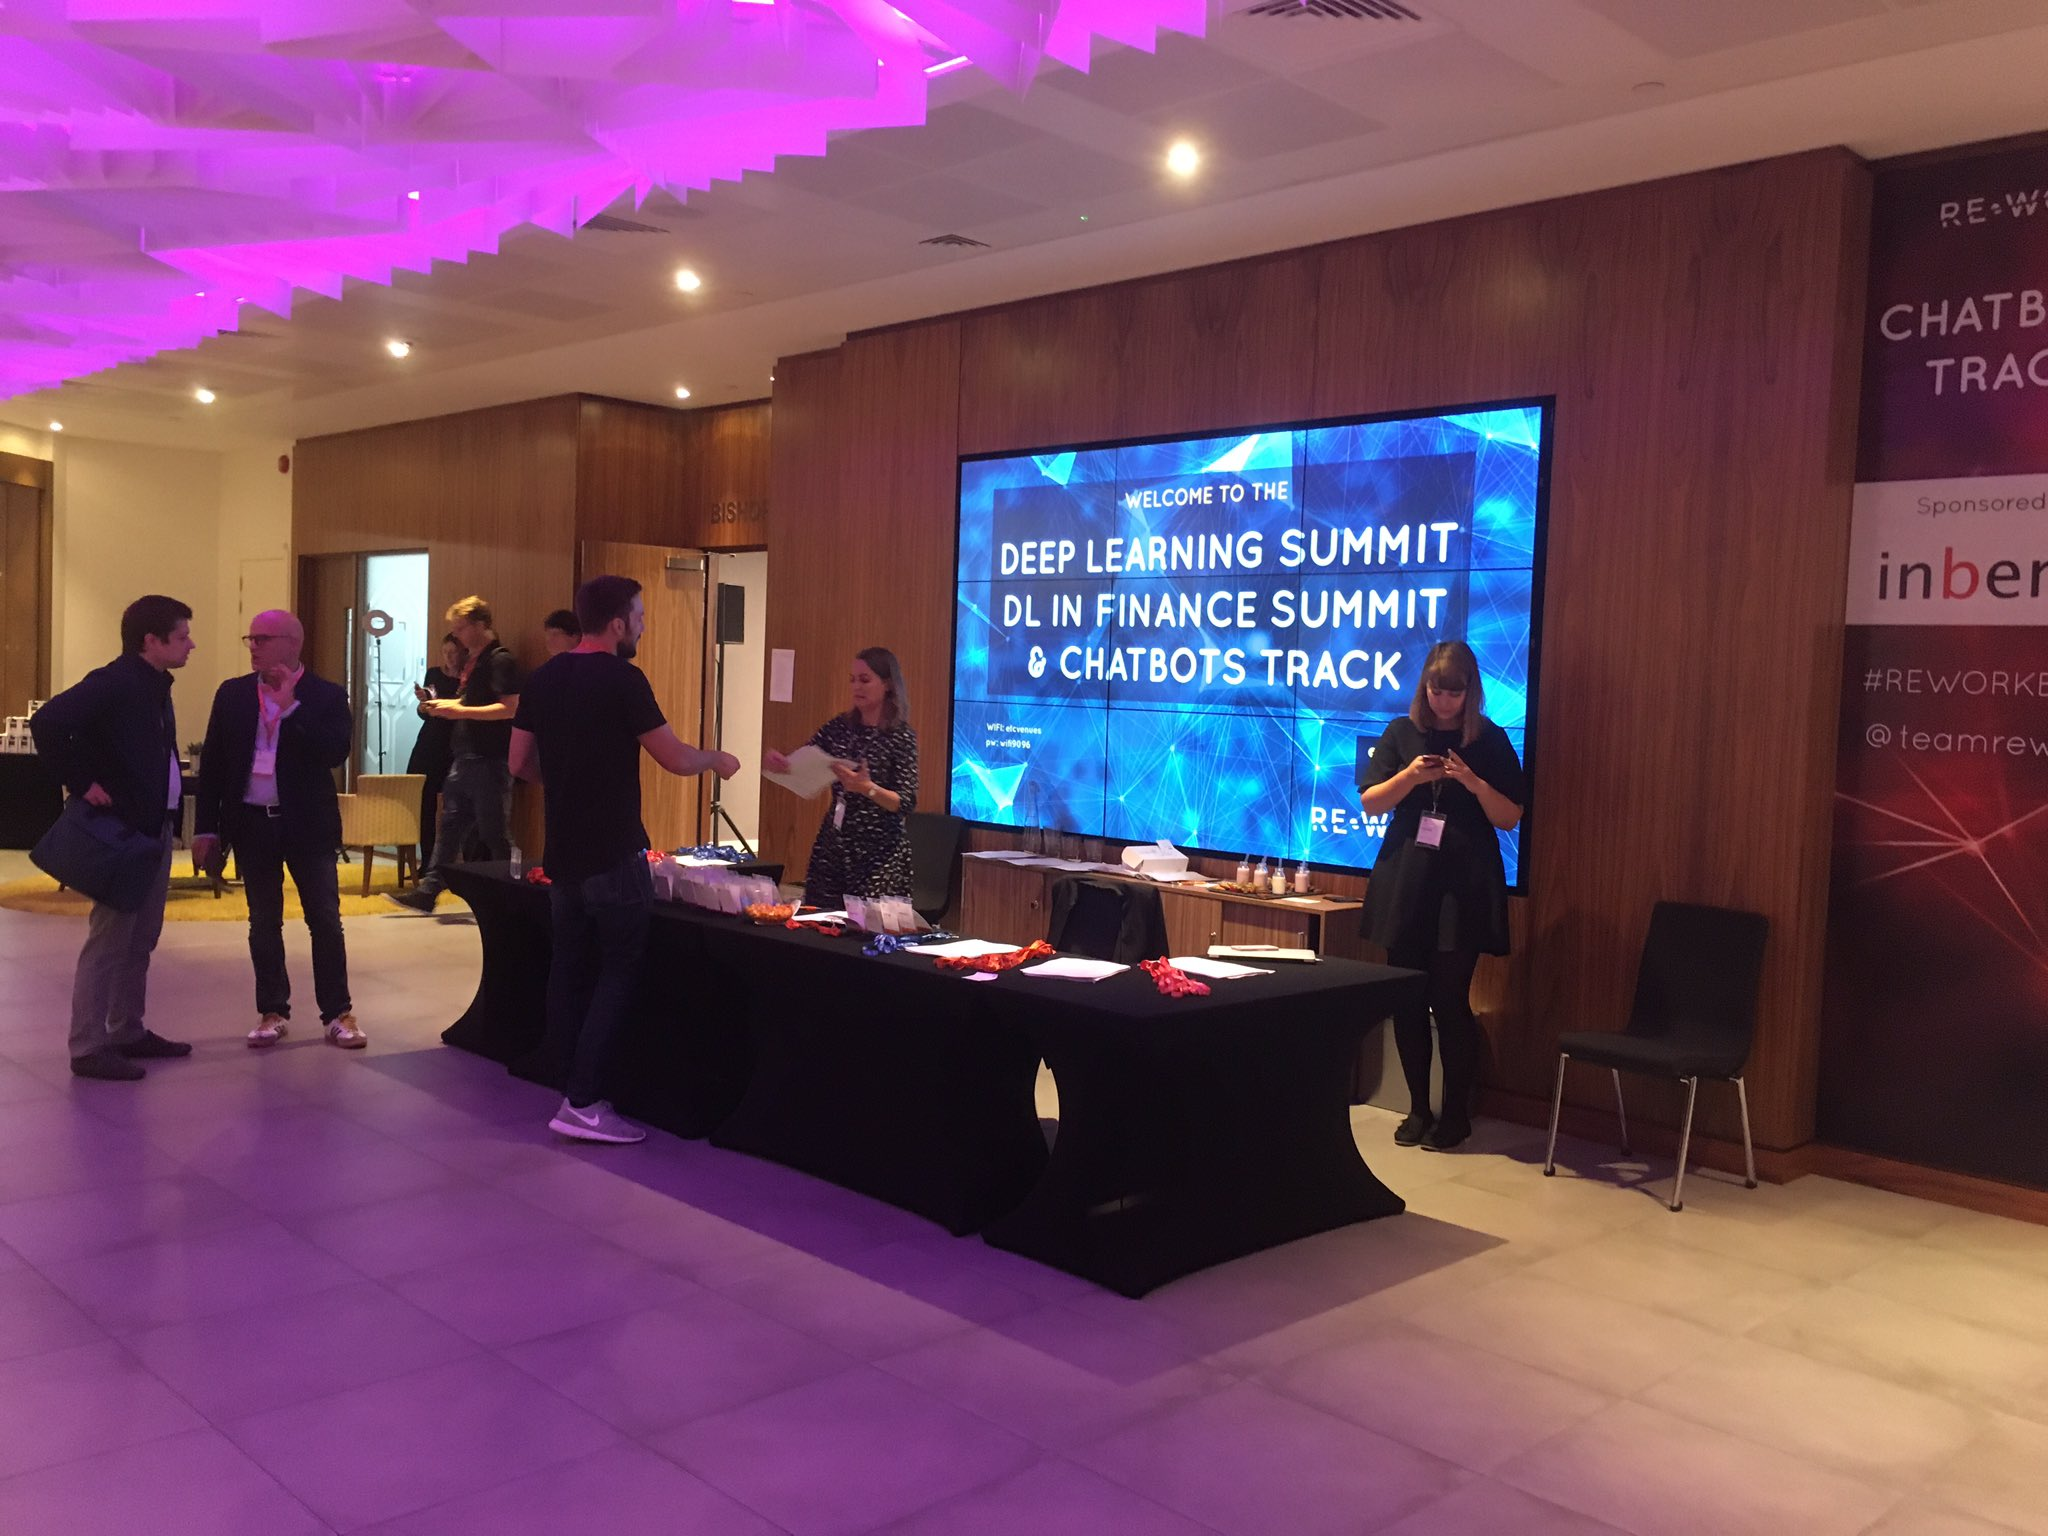 Impressive display of expertise and exciting talks at the deep learning summit #reworkDL in London. https://t.co/WJomW6HSzn